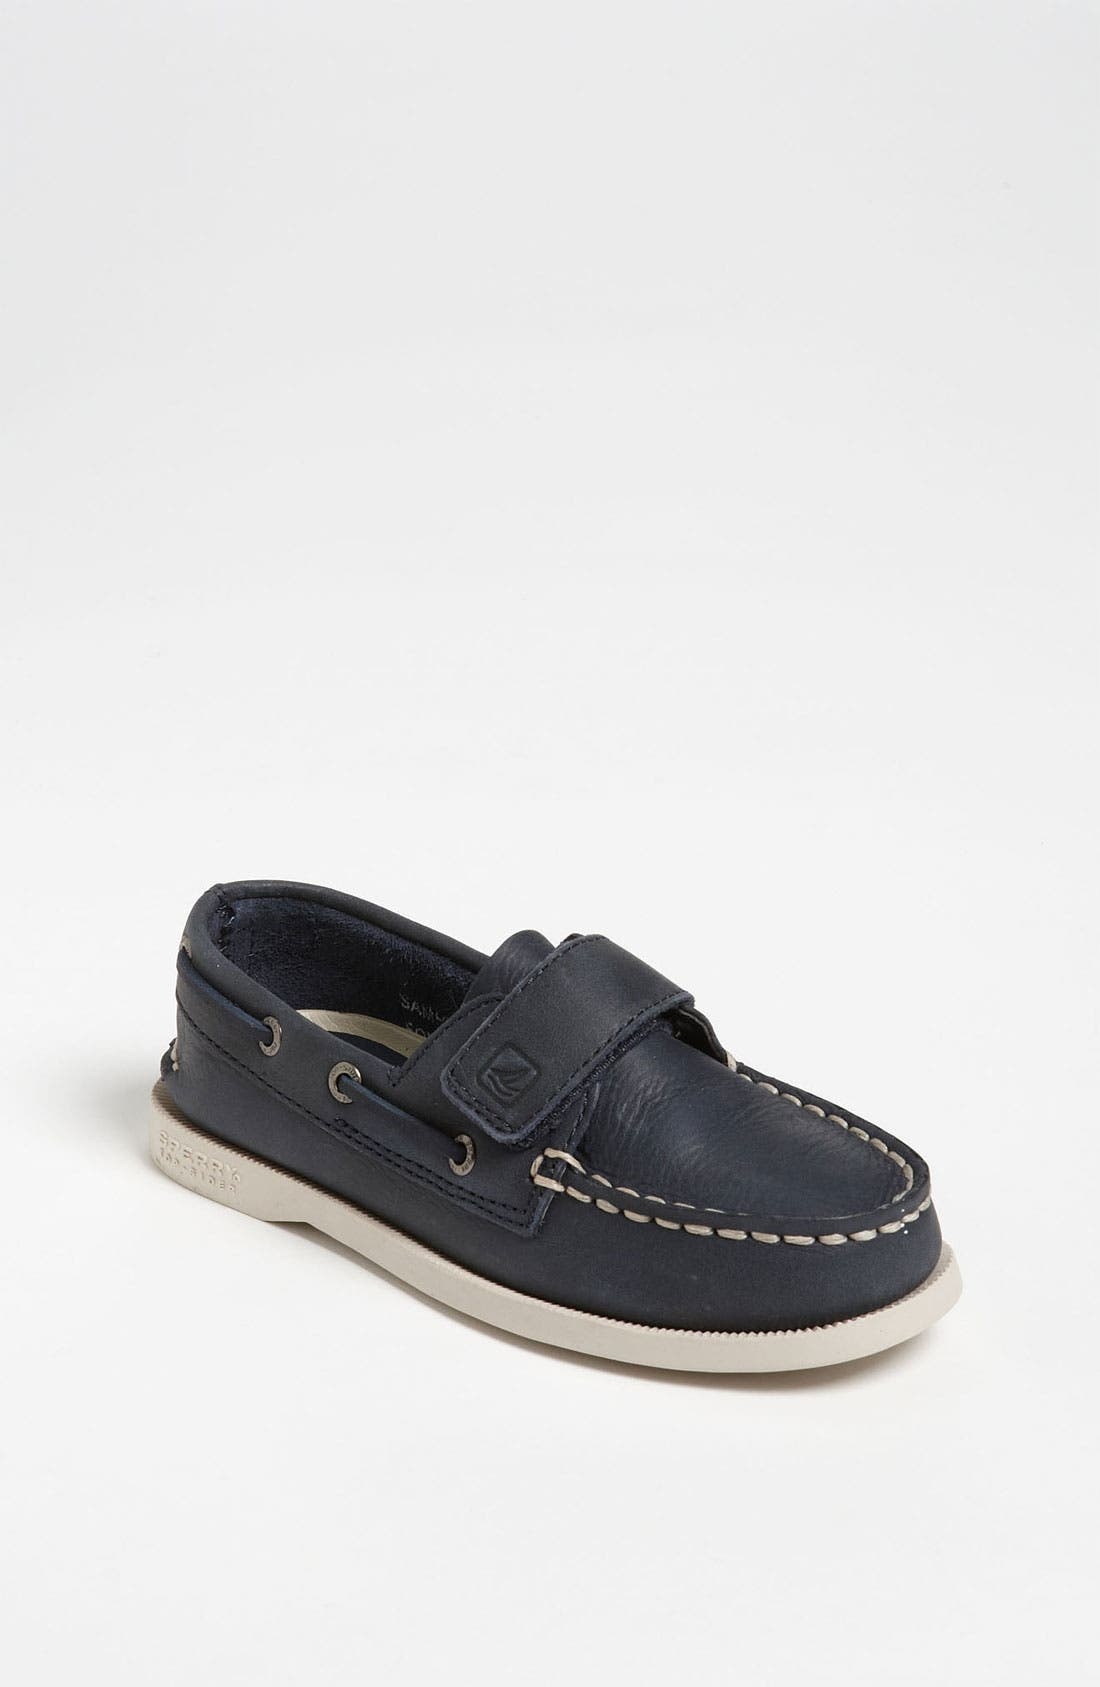 Alternate Image 1 Selected - Sperry Top-Sider® Kids 'Authentic Original' Boat Shoe (Walker, Toddler & Little Kid)